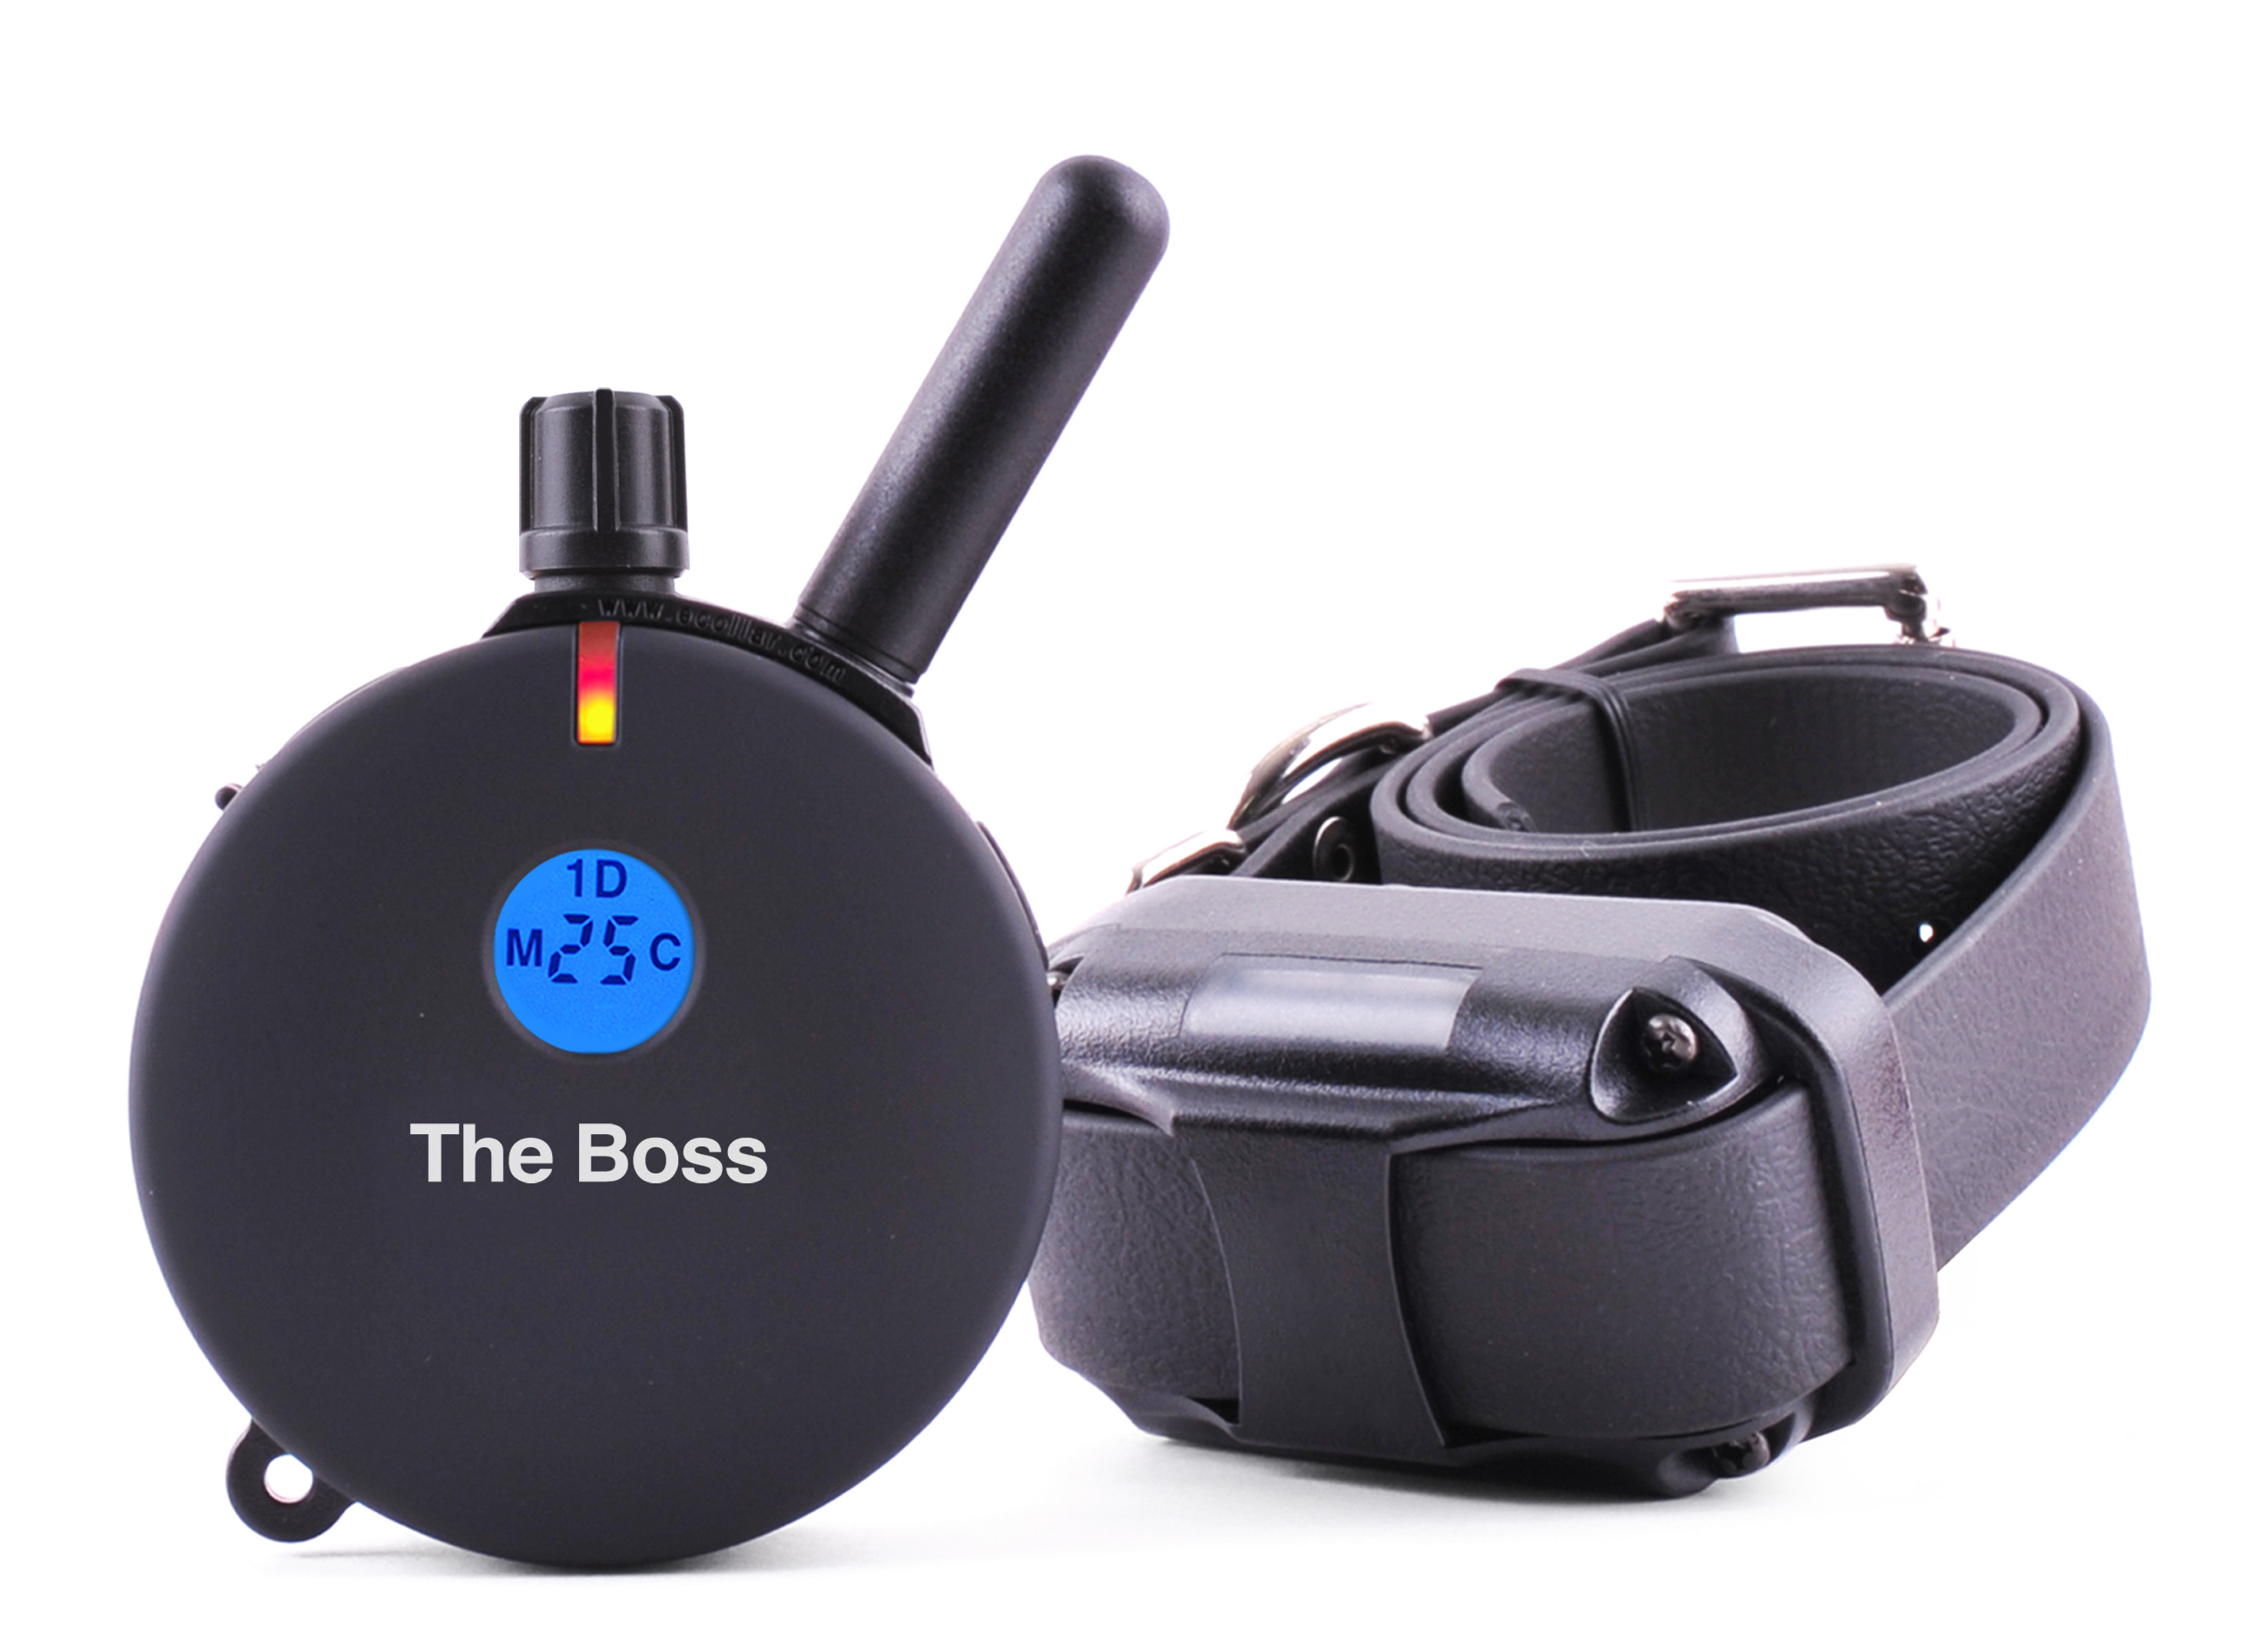 Educator Quot The Boss Quot Et 800ts A Remote Training Collar E